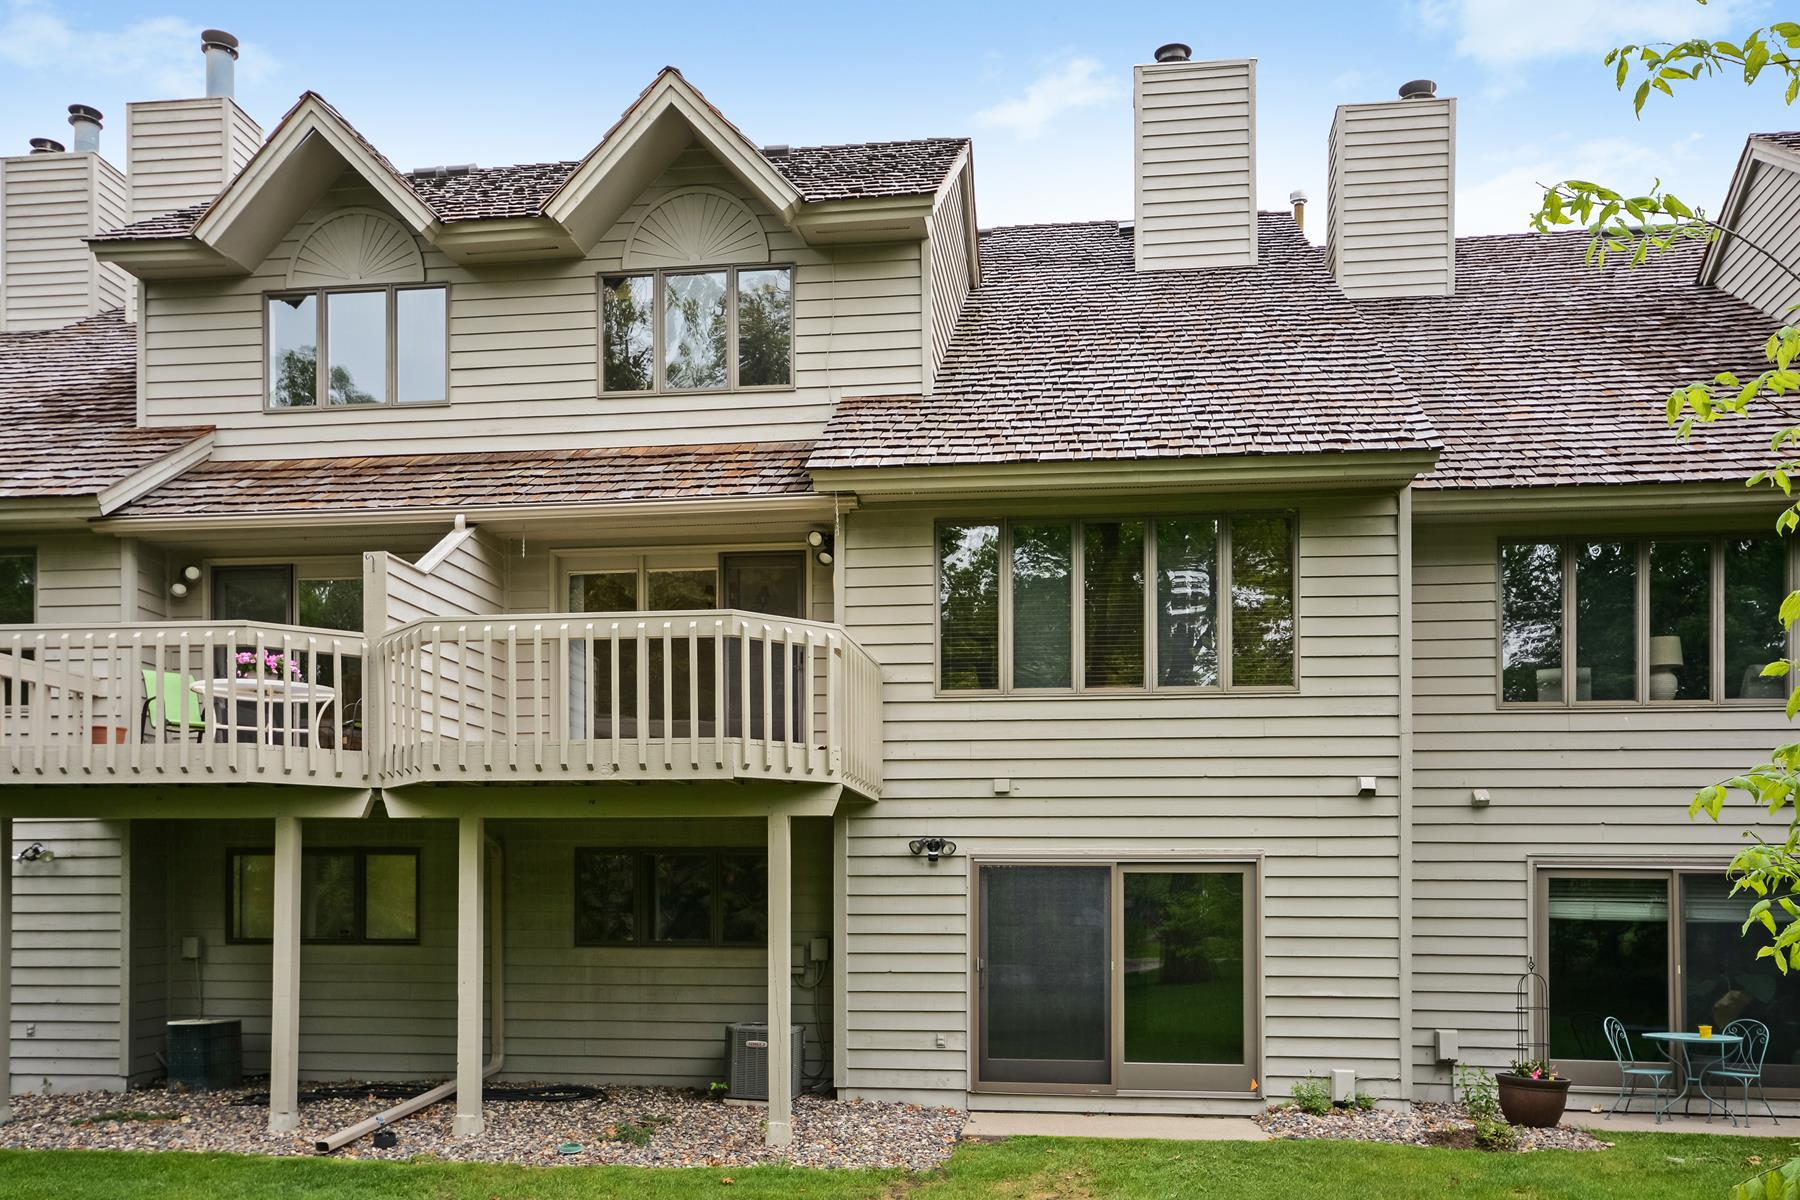 Townhouse for Sale at 7478 Cahill Road Edina, Minnesota, 55439 United States